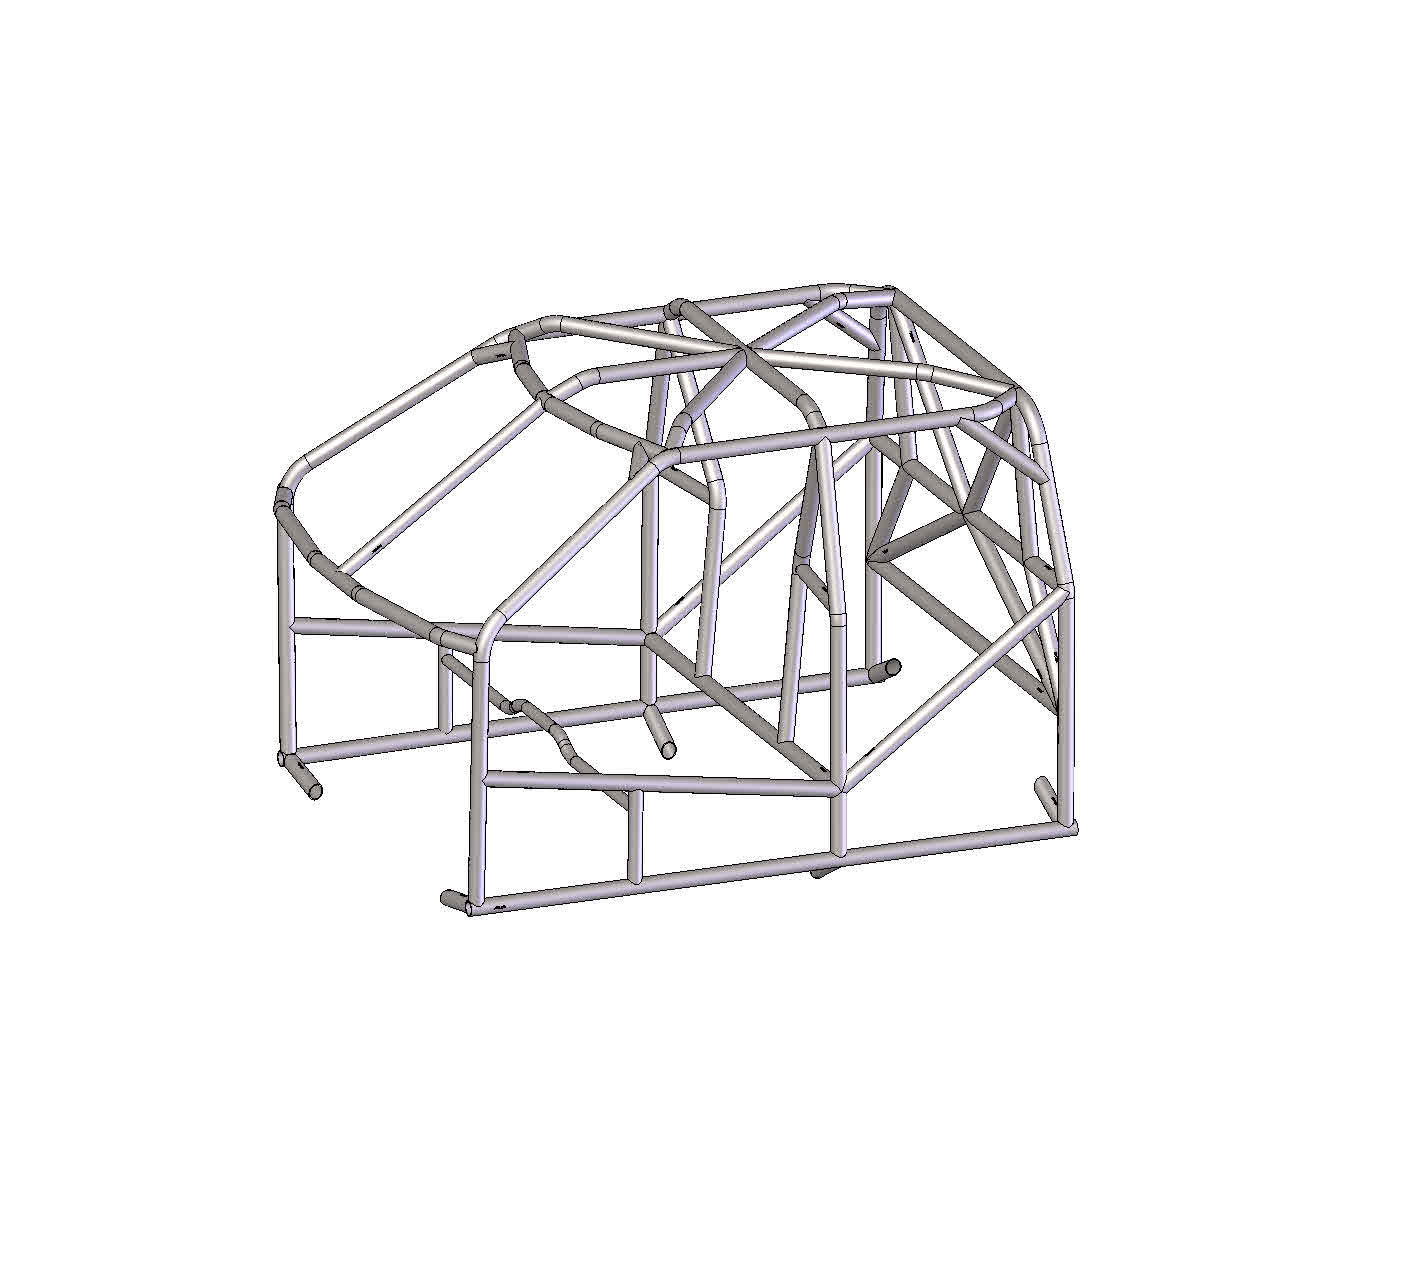 Raptor Super Cab Roll Cage Kit